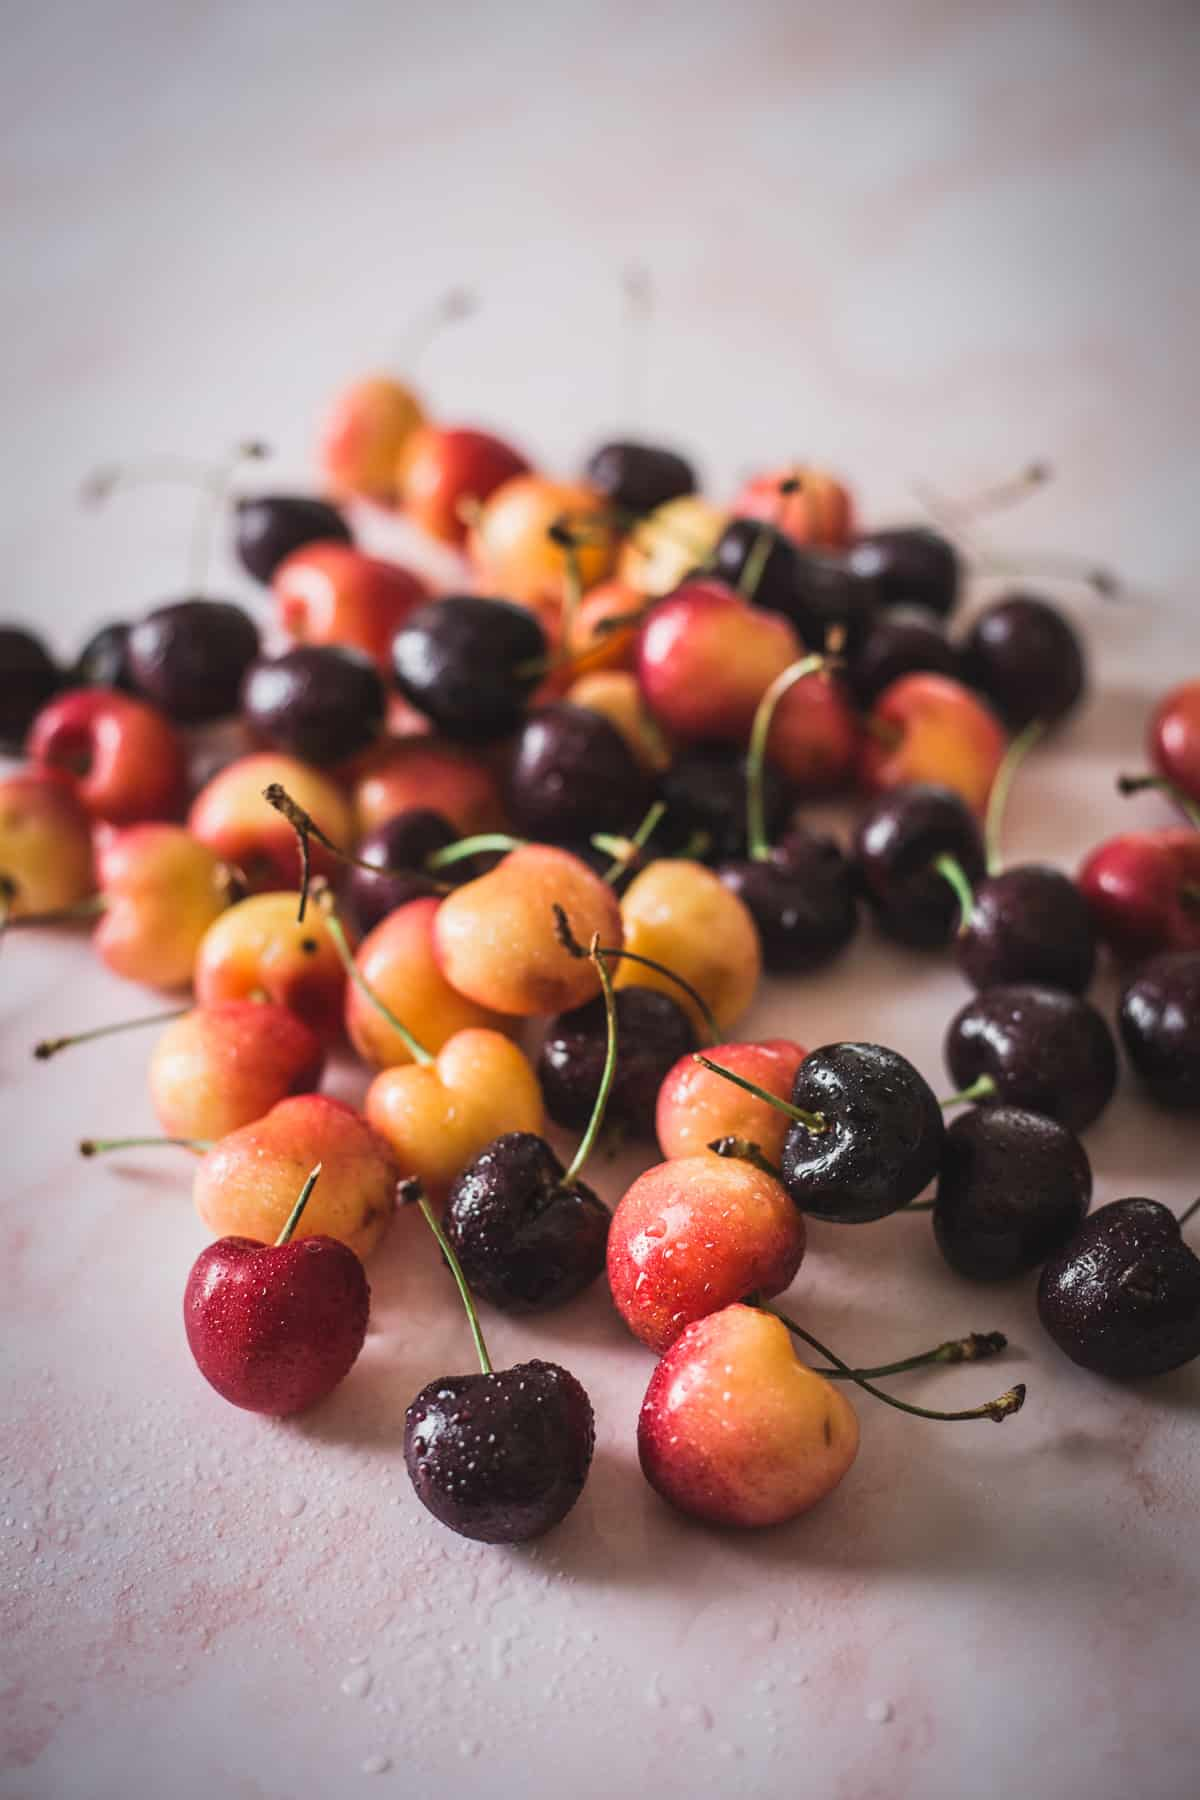 cherries of two colors